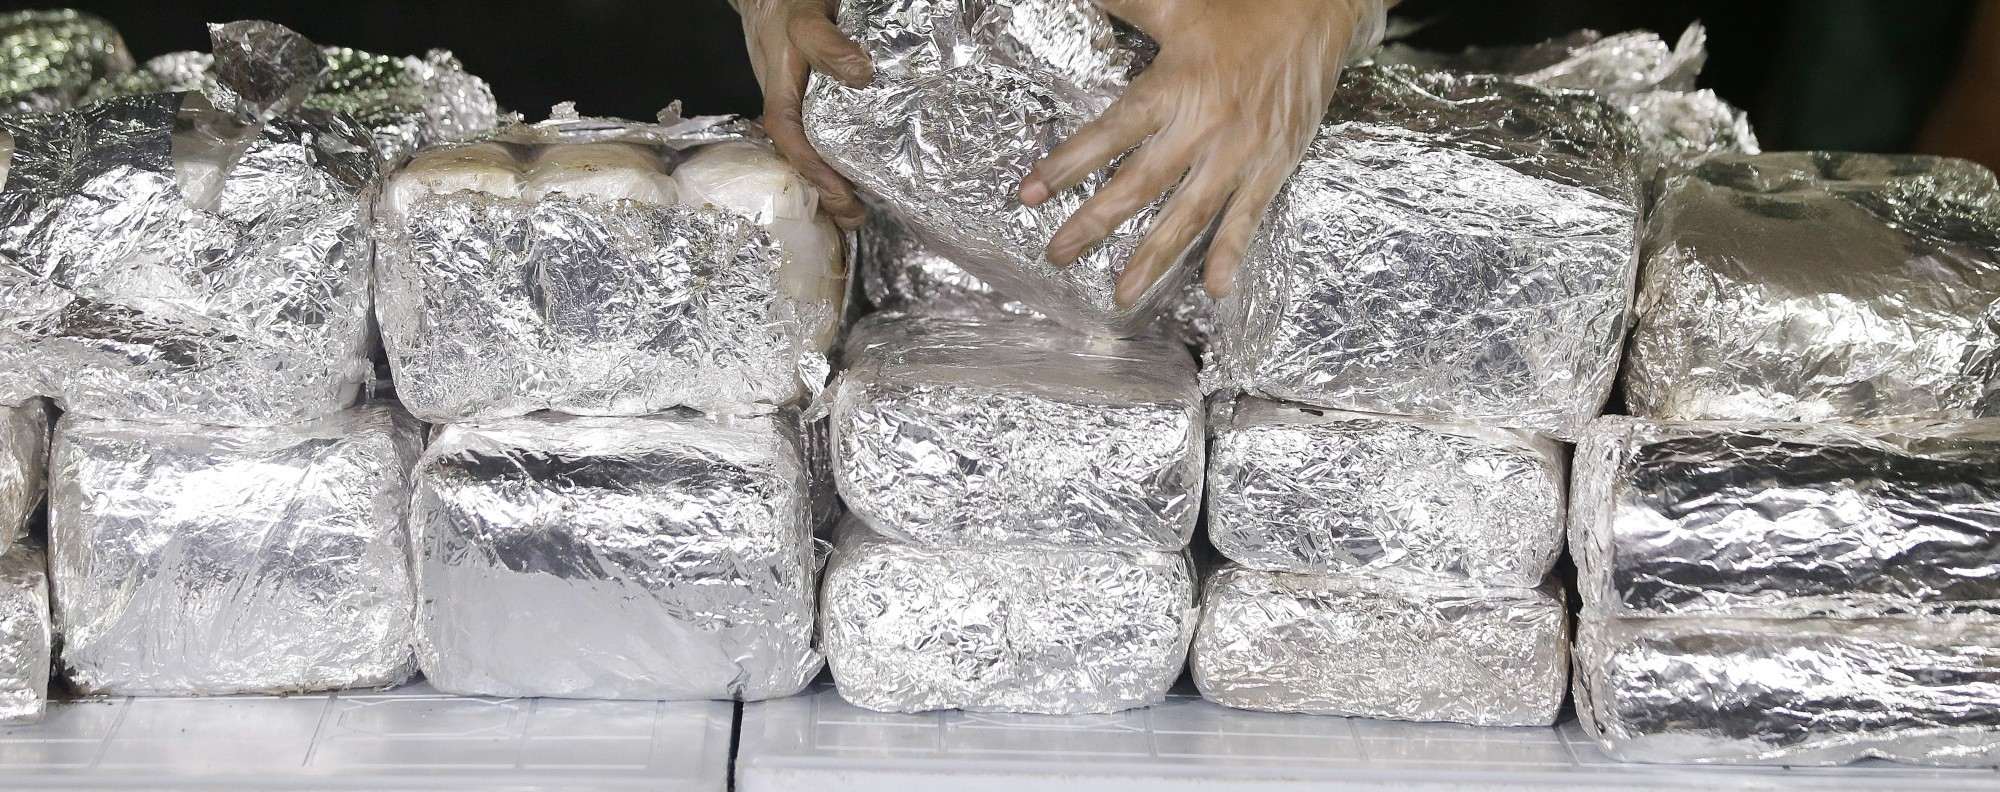 Packs of shabu in the Philippines. Photo: AP